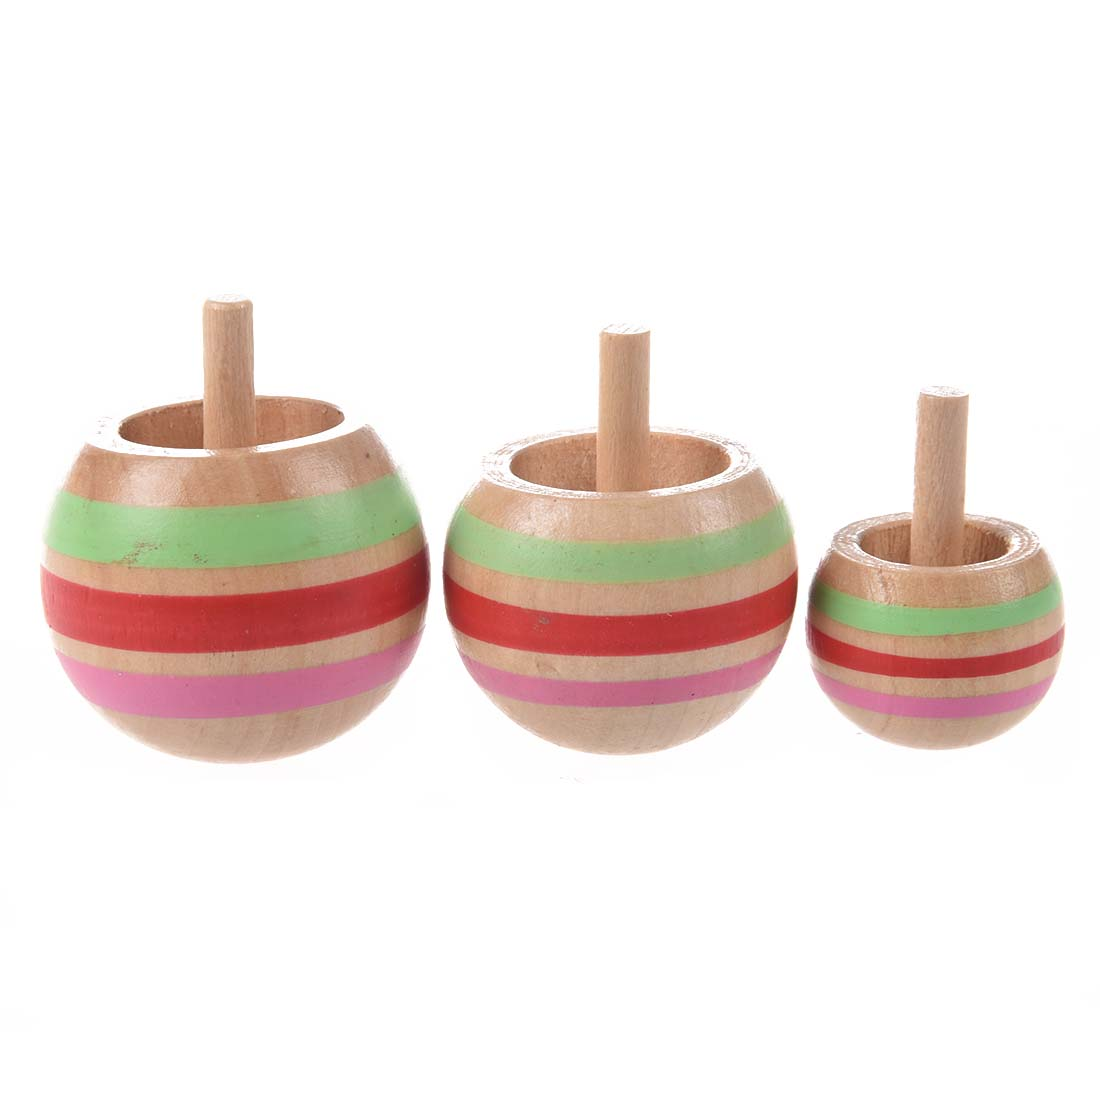 Wholesale!3pcs Wooden Colorful Spinning Top Kids Toy 3 Sizes for Children Above 3 Years Old